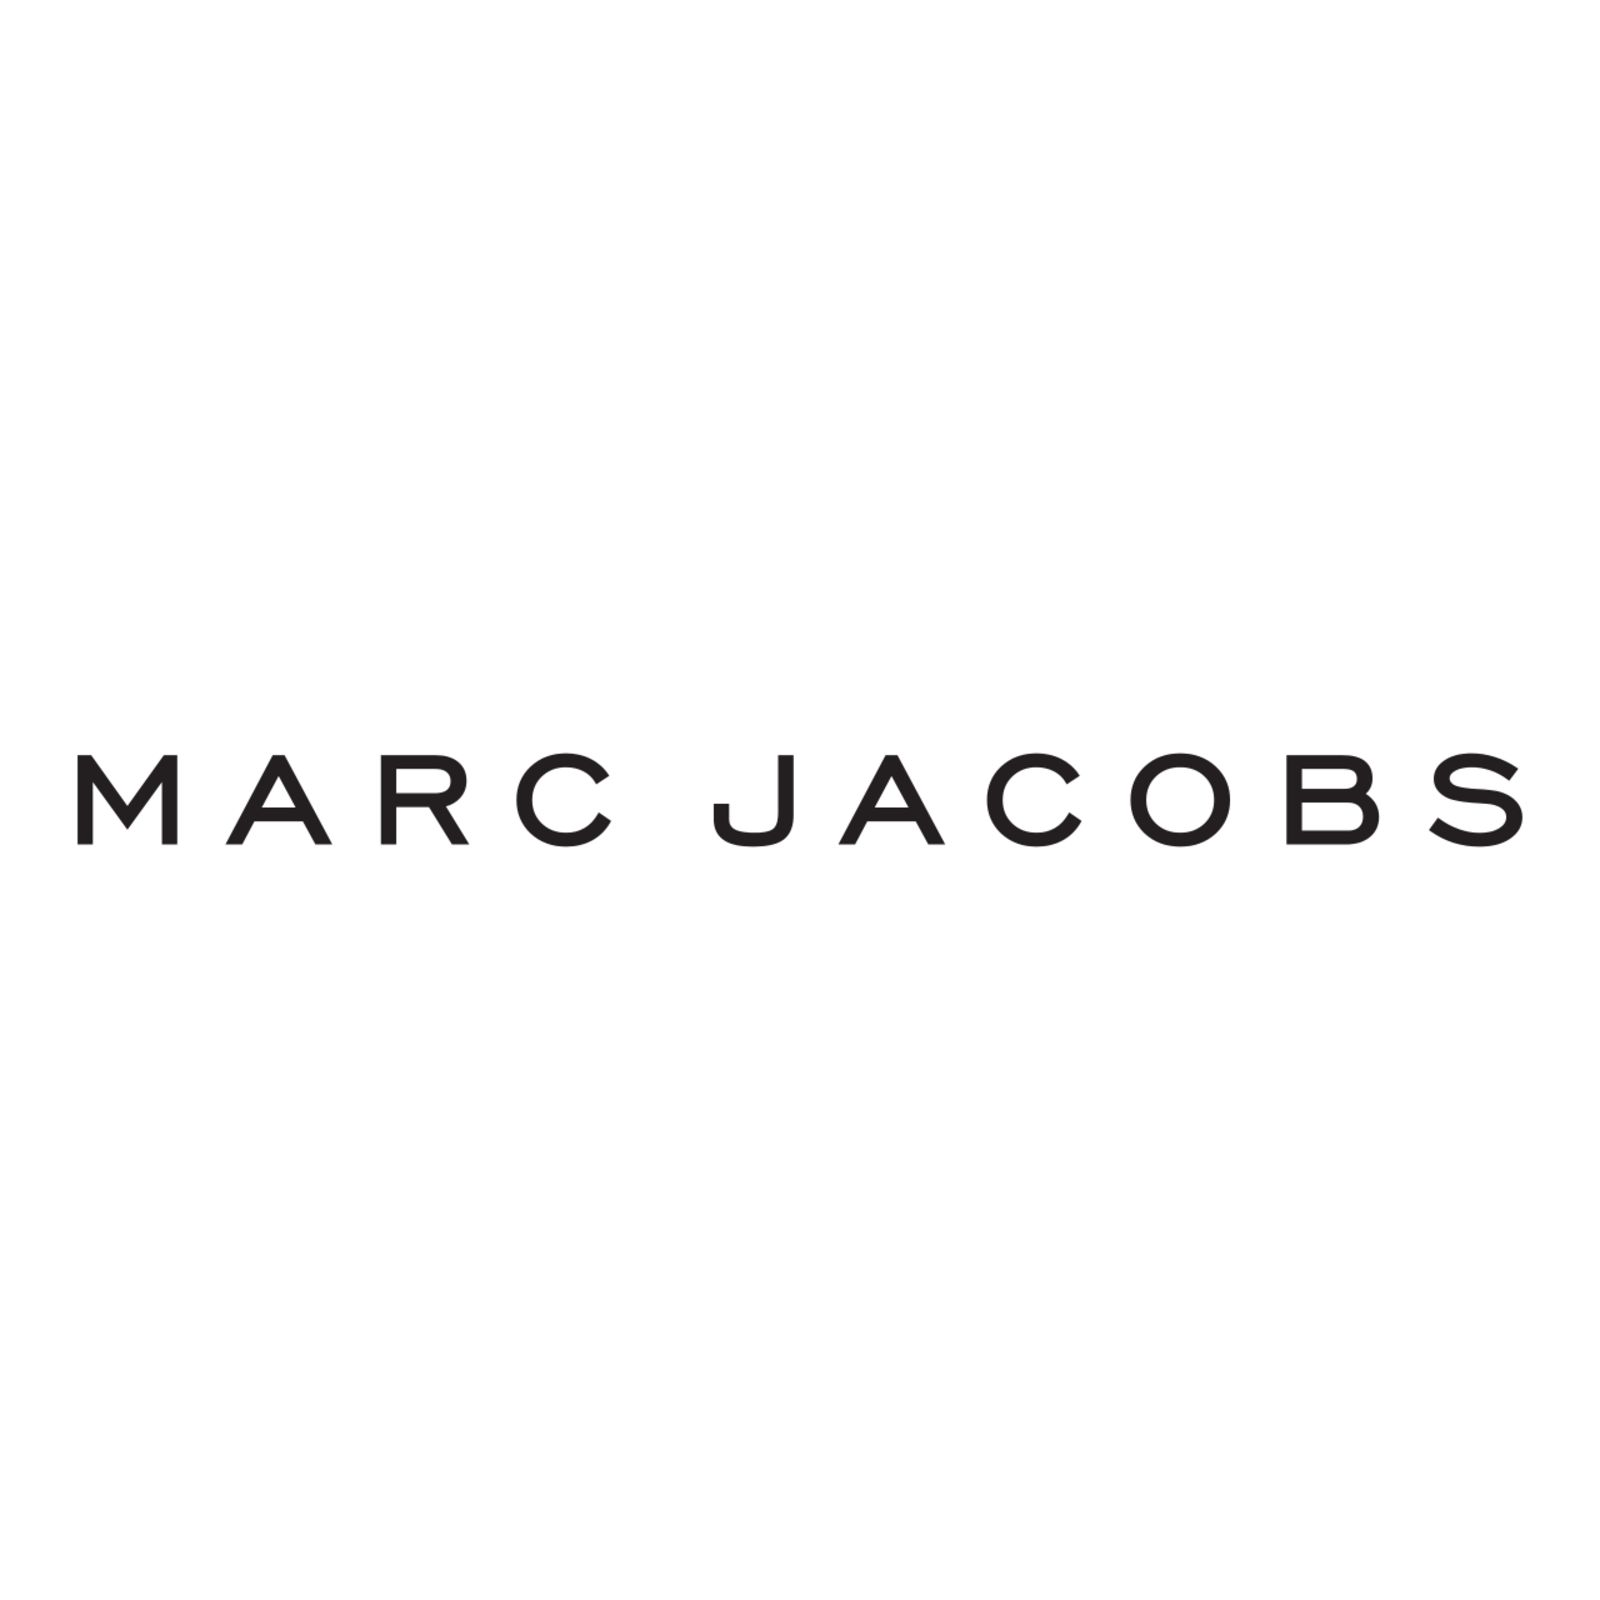 MARC JACOBS Eyewear (Image 1)